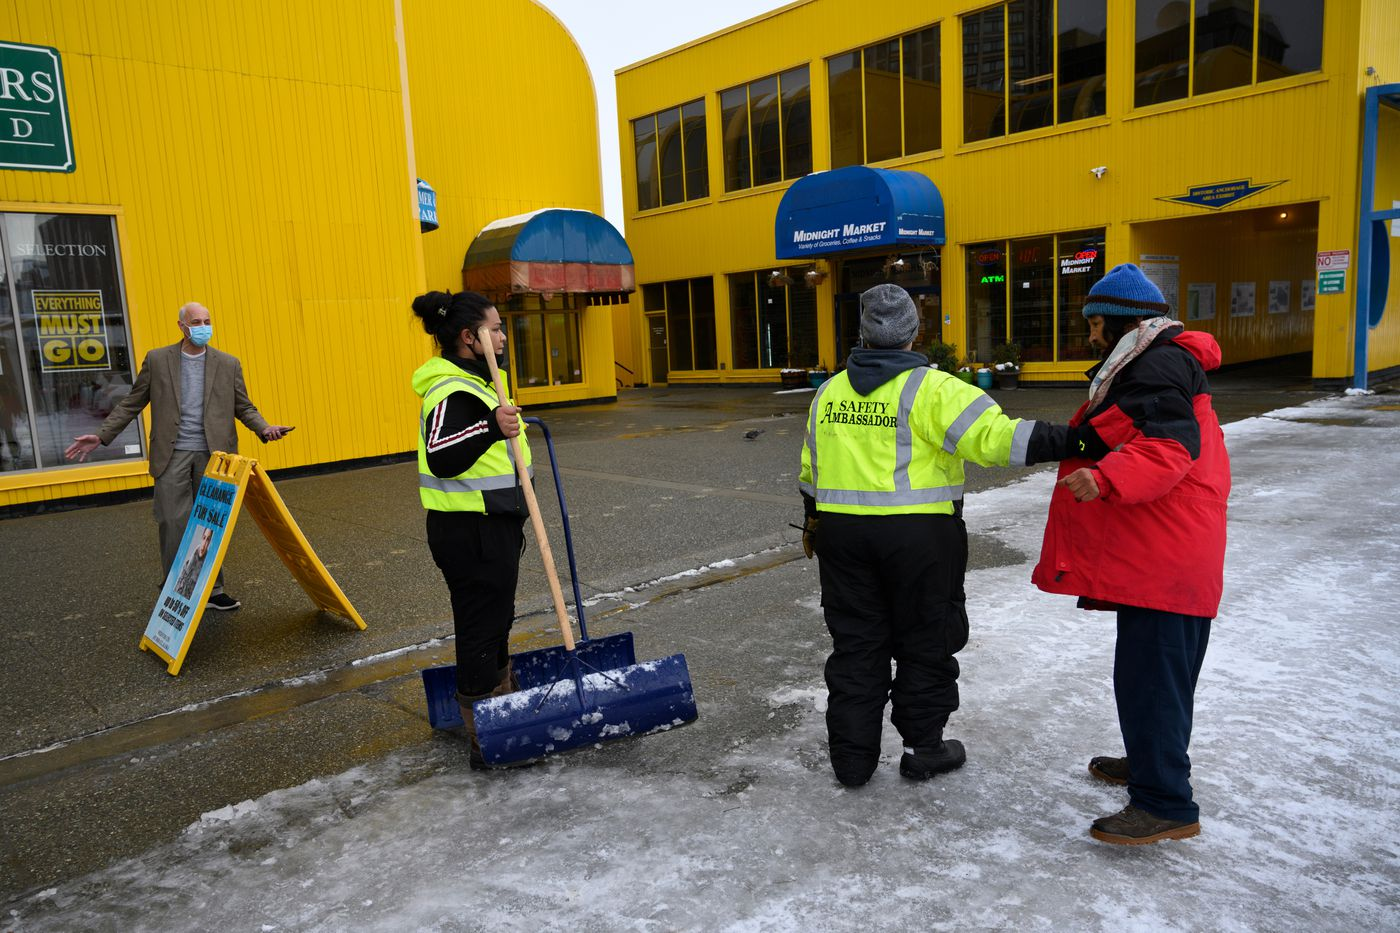 Adam Glazer of Wild Furs Limited, left, confronts a man in front of the business who threatened to spit at him before Safety Ambassadors intervened. (Marc Lester / ADN)